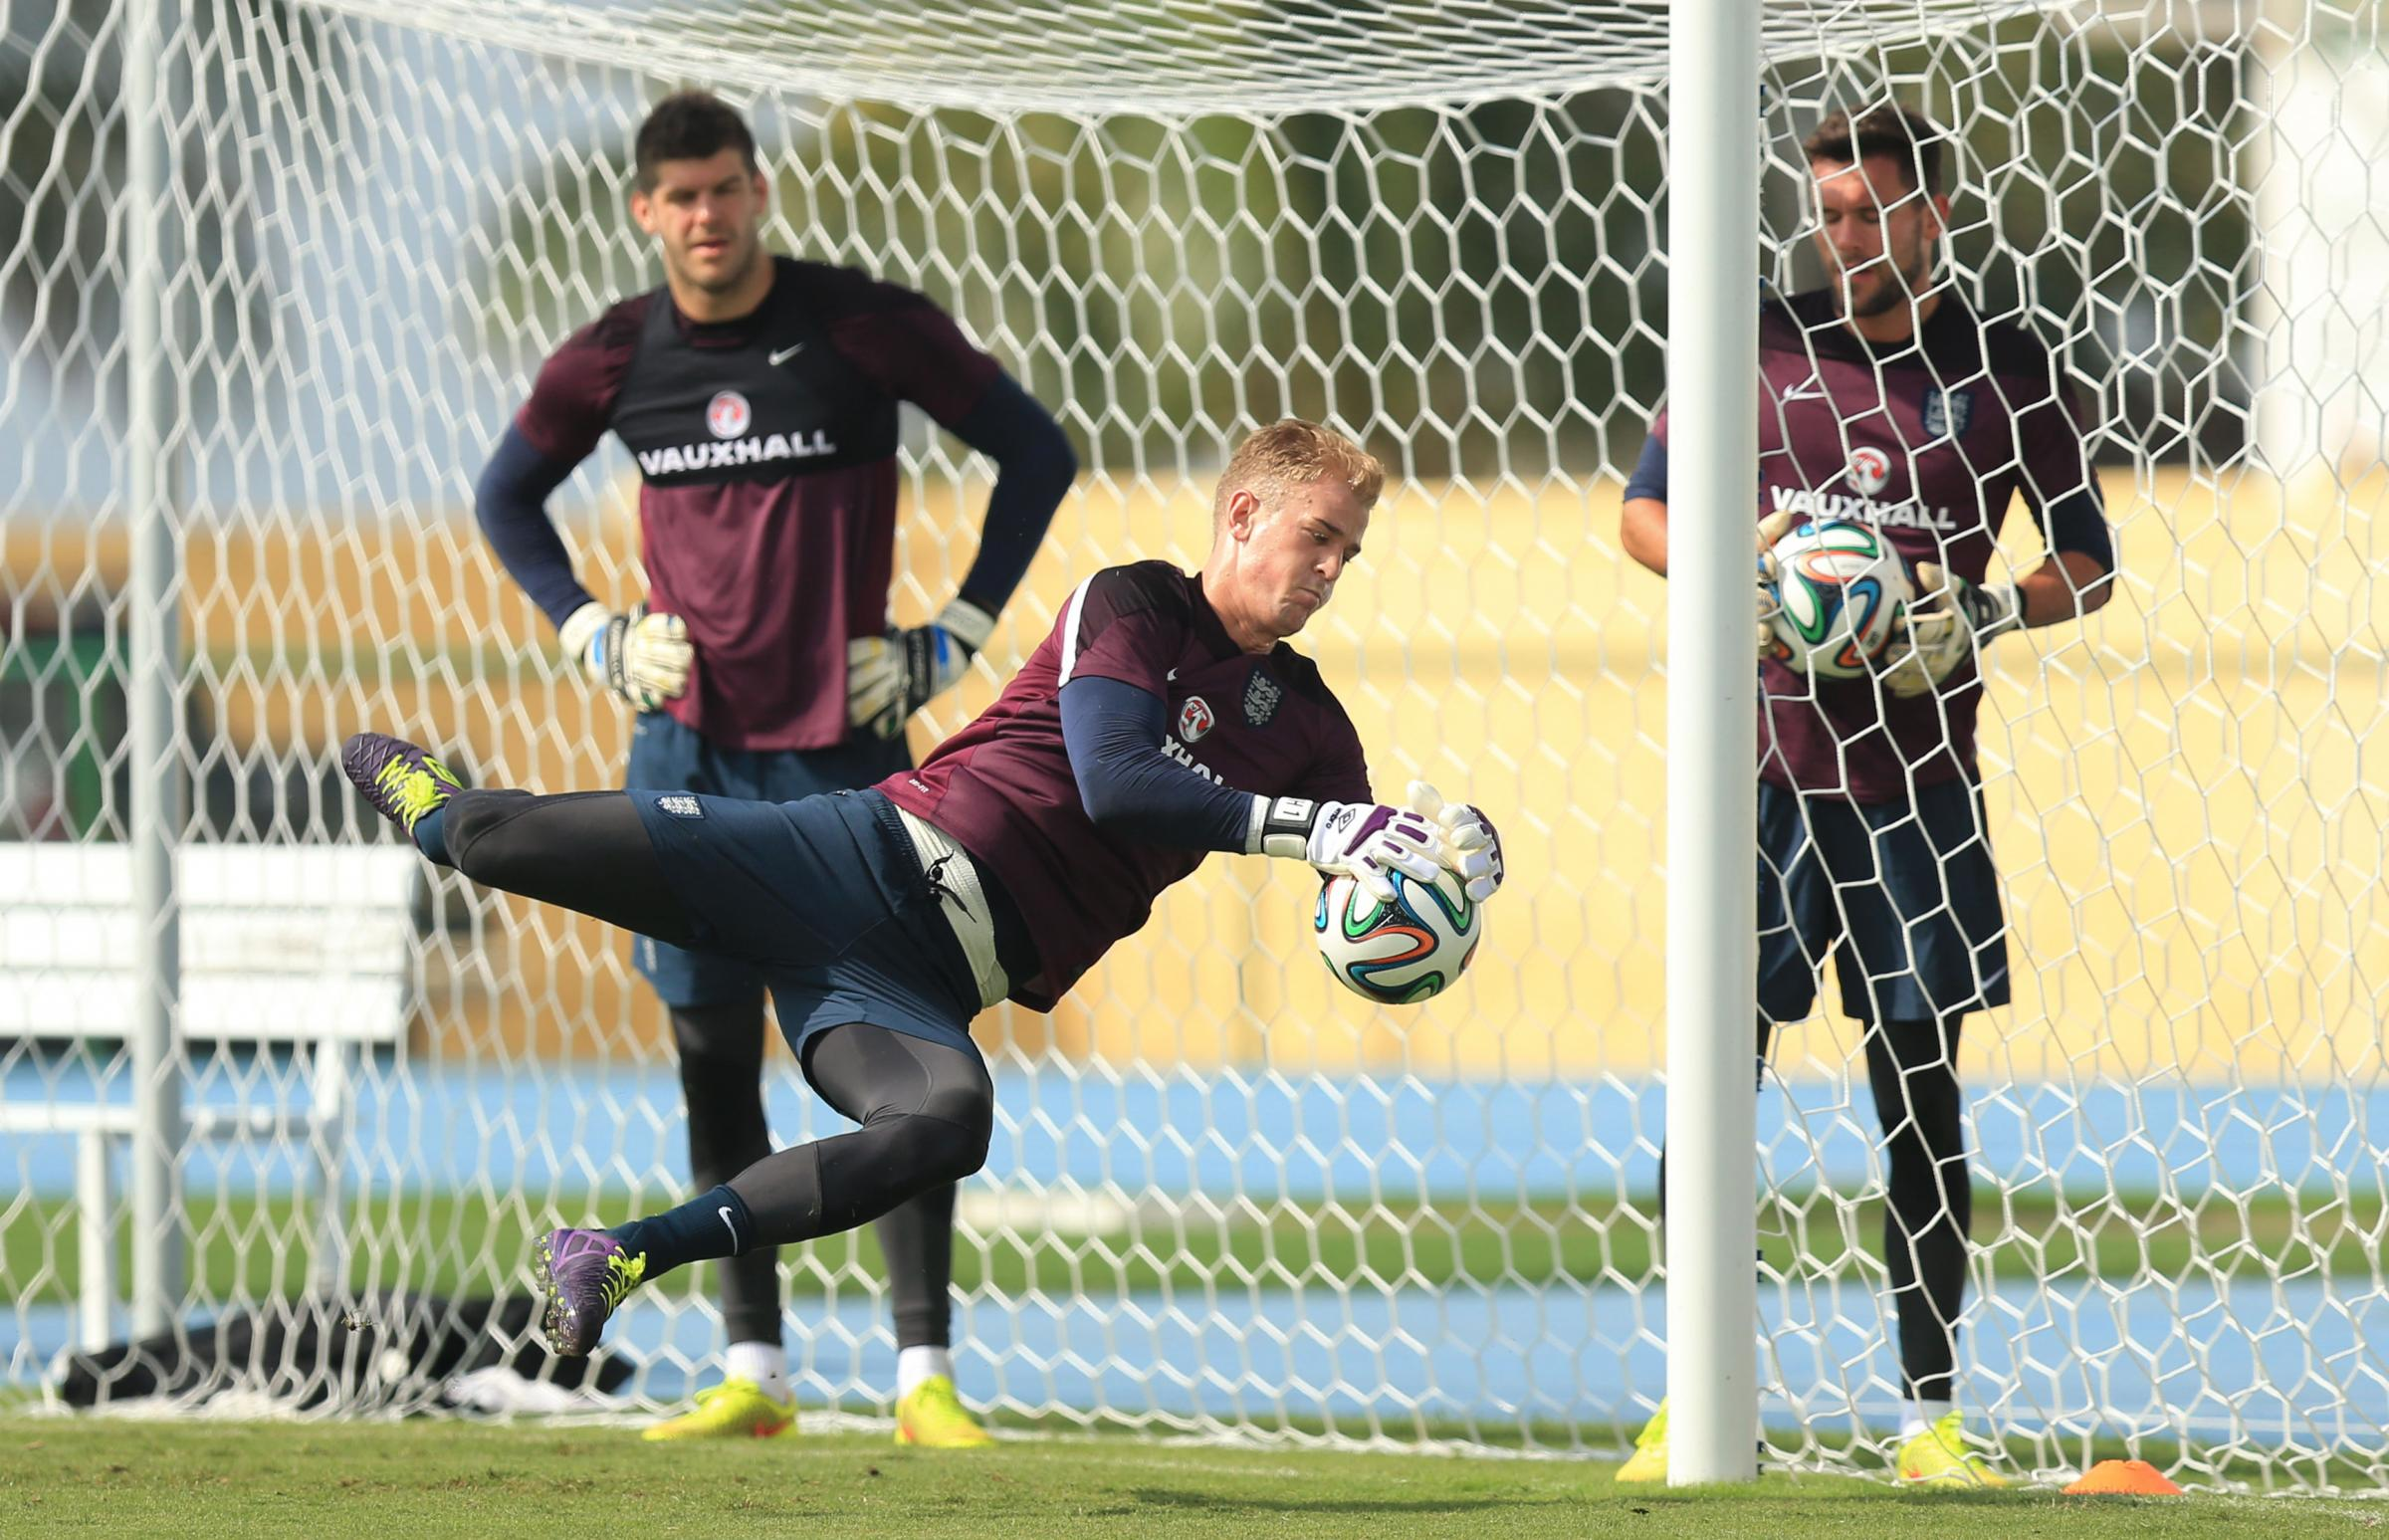 SAFE HANDS: Joe Hart is closely watched by Fraser Forster and Ben Foster in training